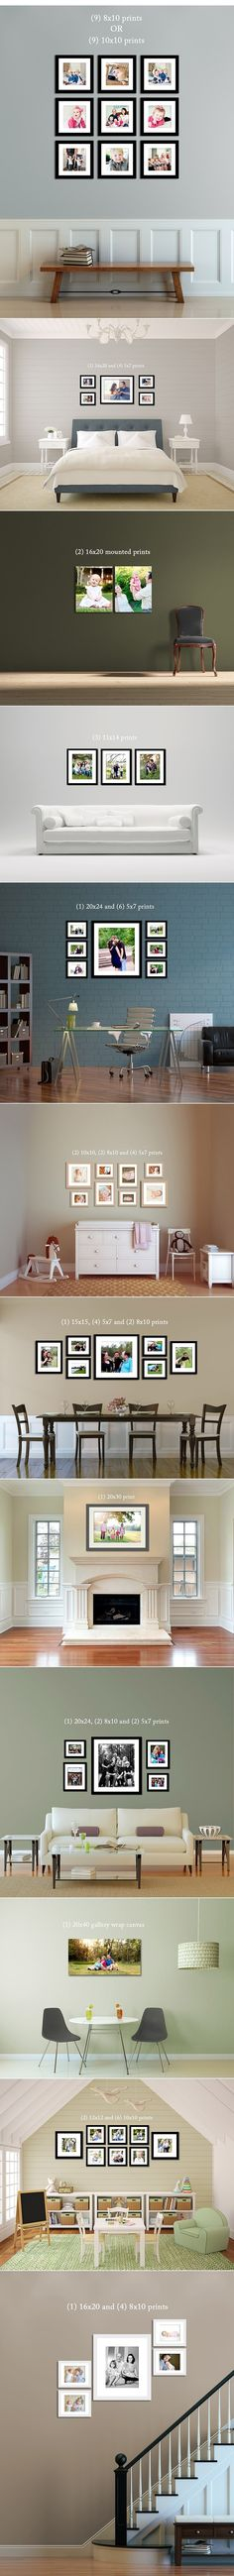 cute layout ideas WITH measurements